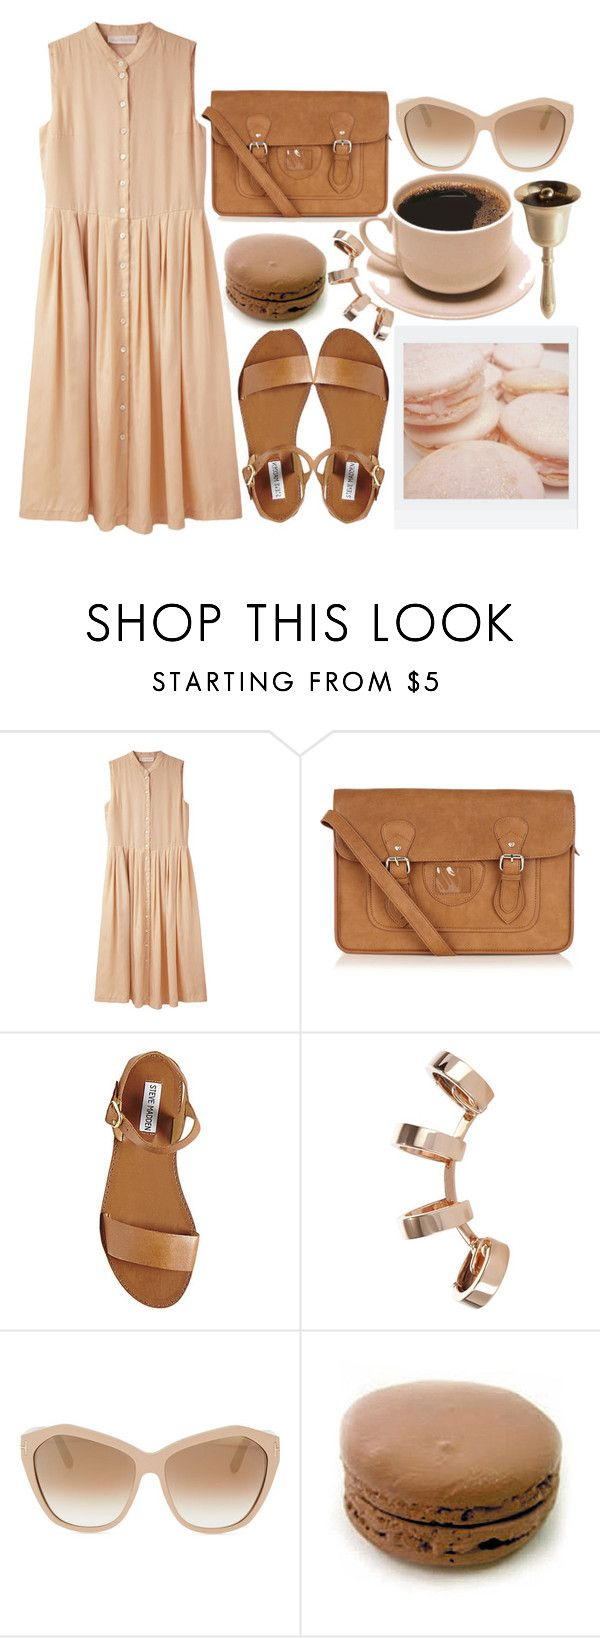 """She's daddy's favorite"" by mlleelena ❤ liked on Polyvore featuring Cacharel, Oasis, Steve Madden, Polaroid, Repossi and Tom Ford"